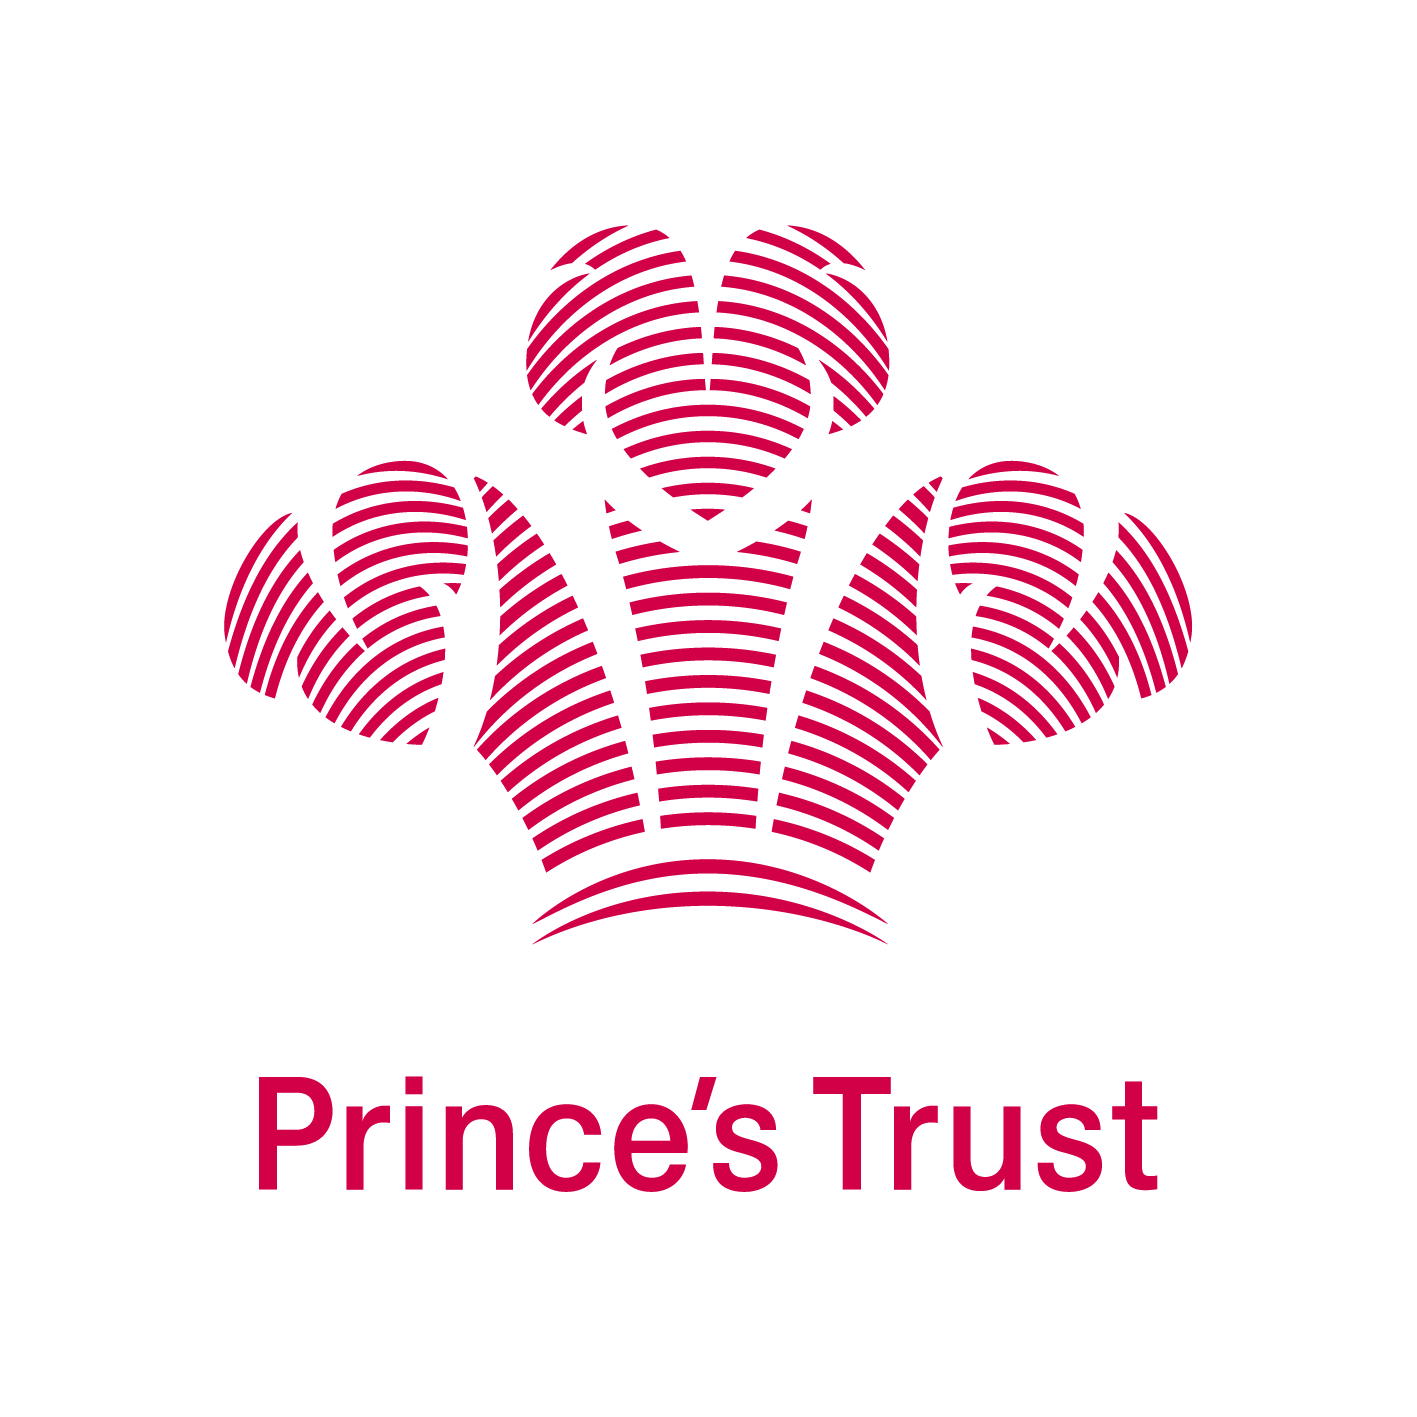 ... for starting a business | Help for young people | The Prince's Trust